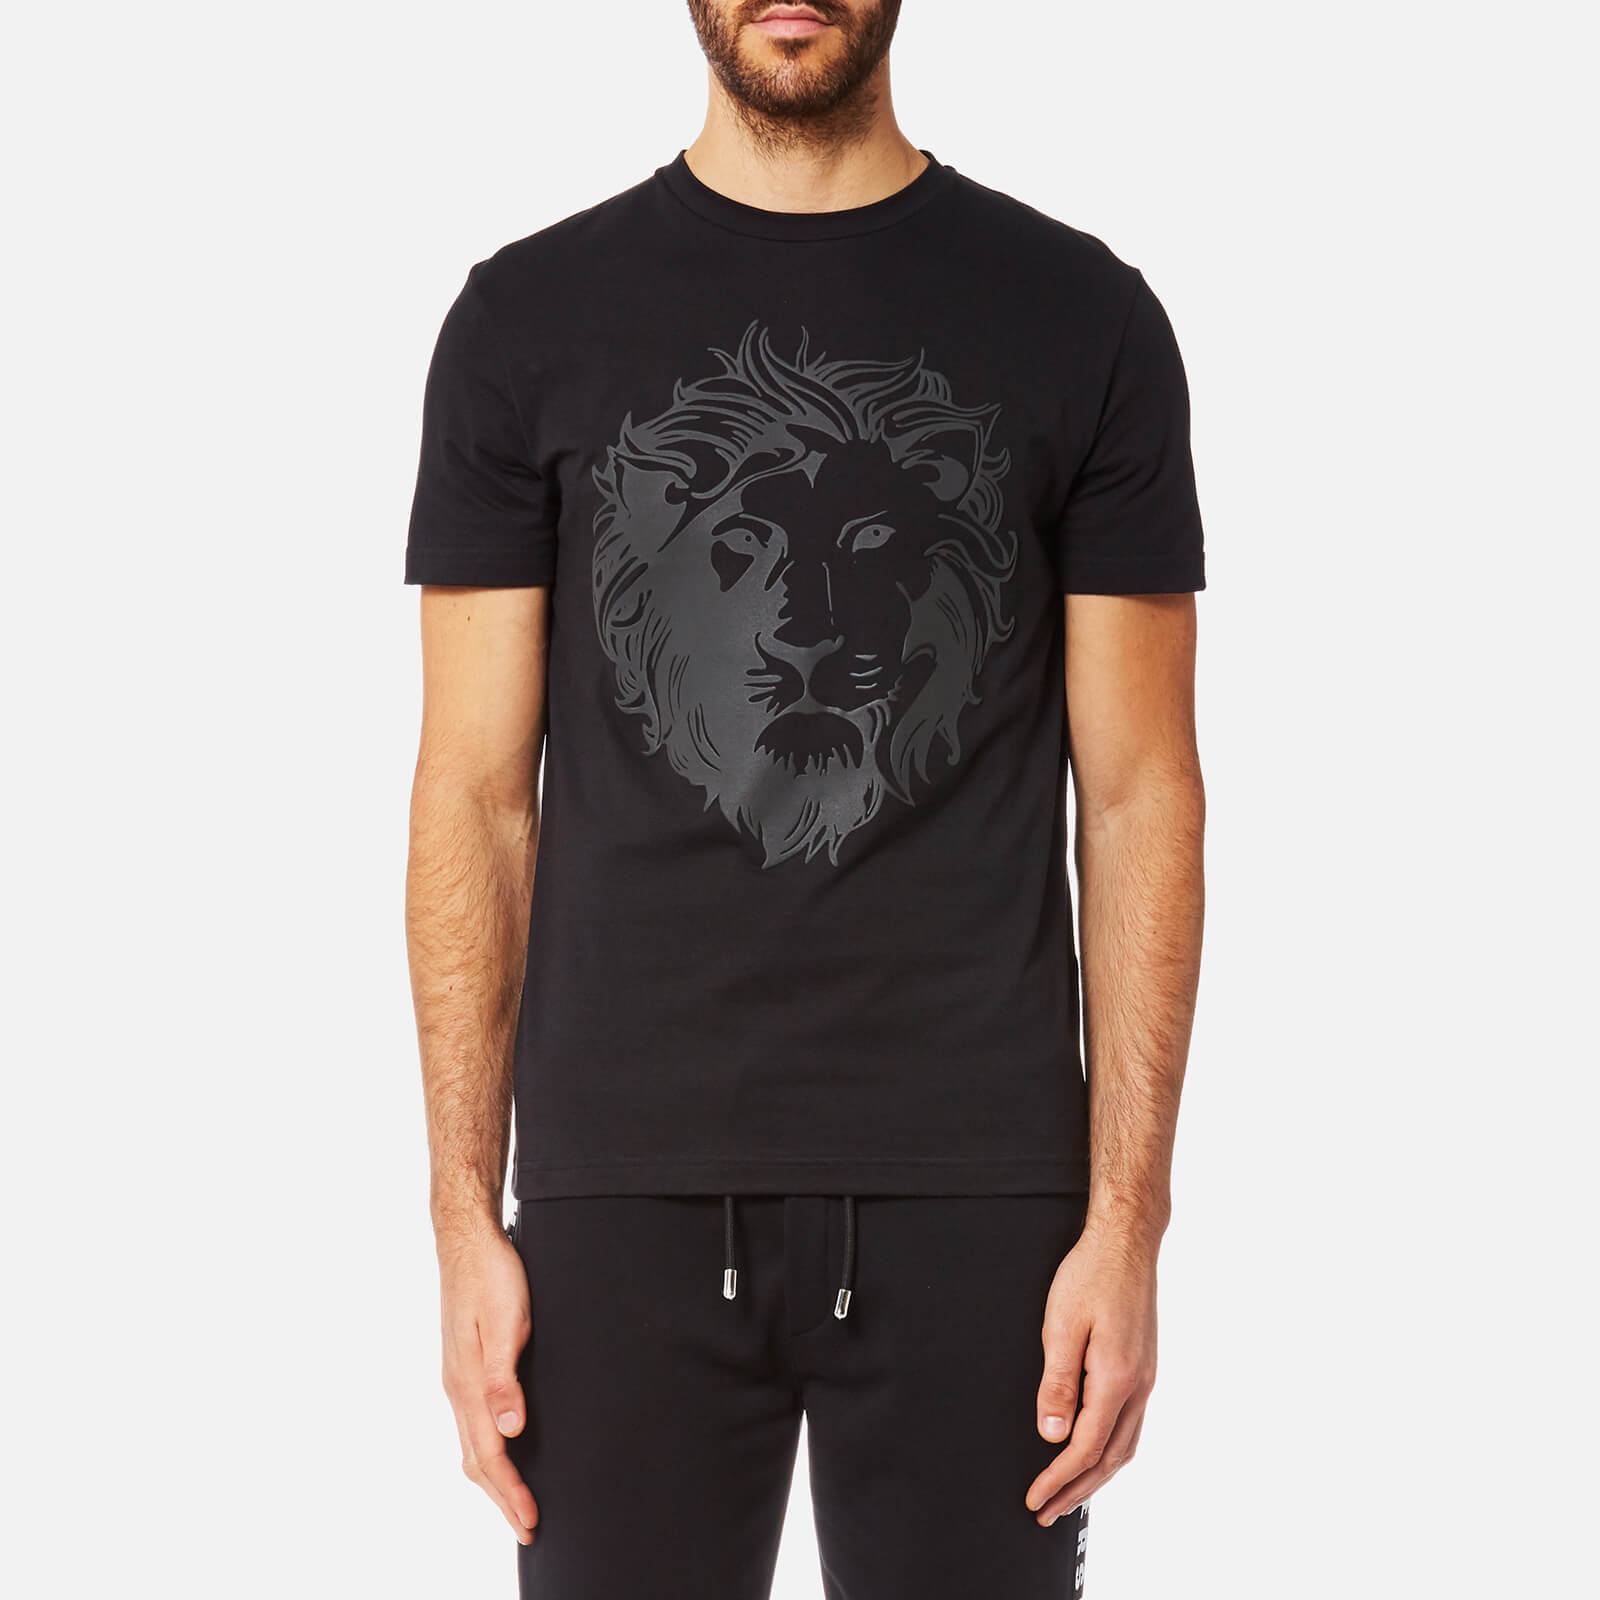 36422e99ec93e7 Versus Versace Men's Printed Versace Short Sleeve T-Shirt - Black/Stampa -  Free UK Delivery over £50